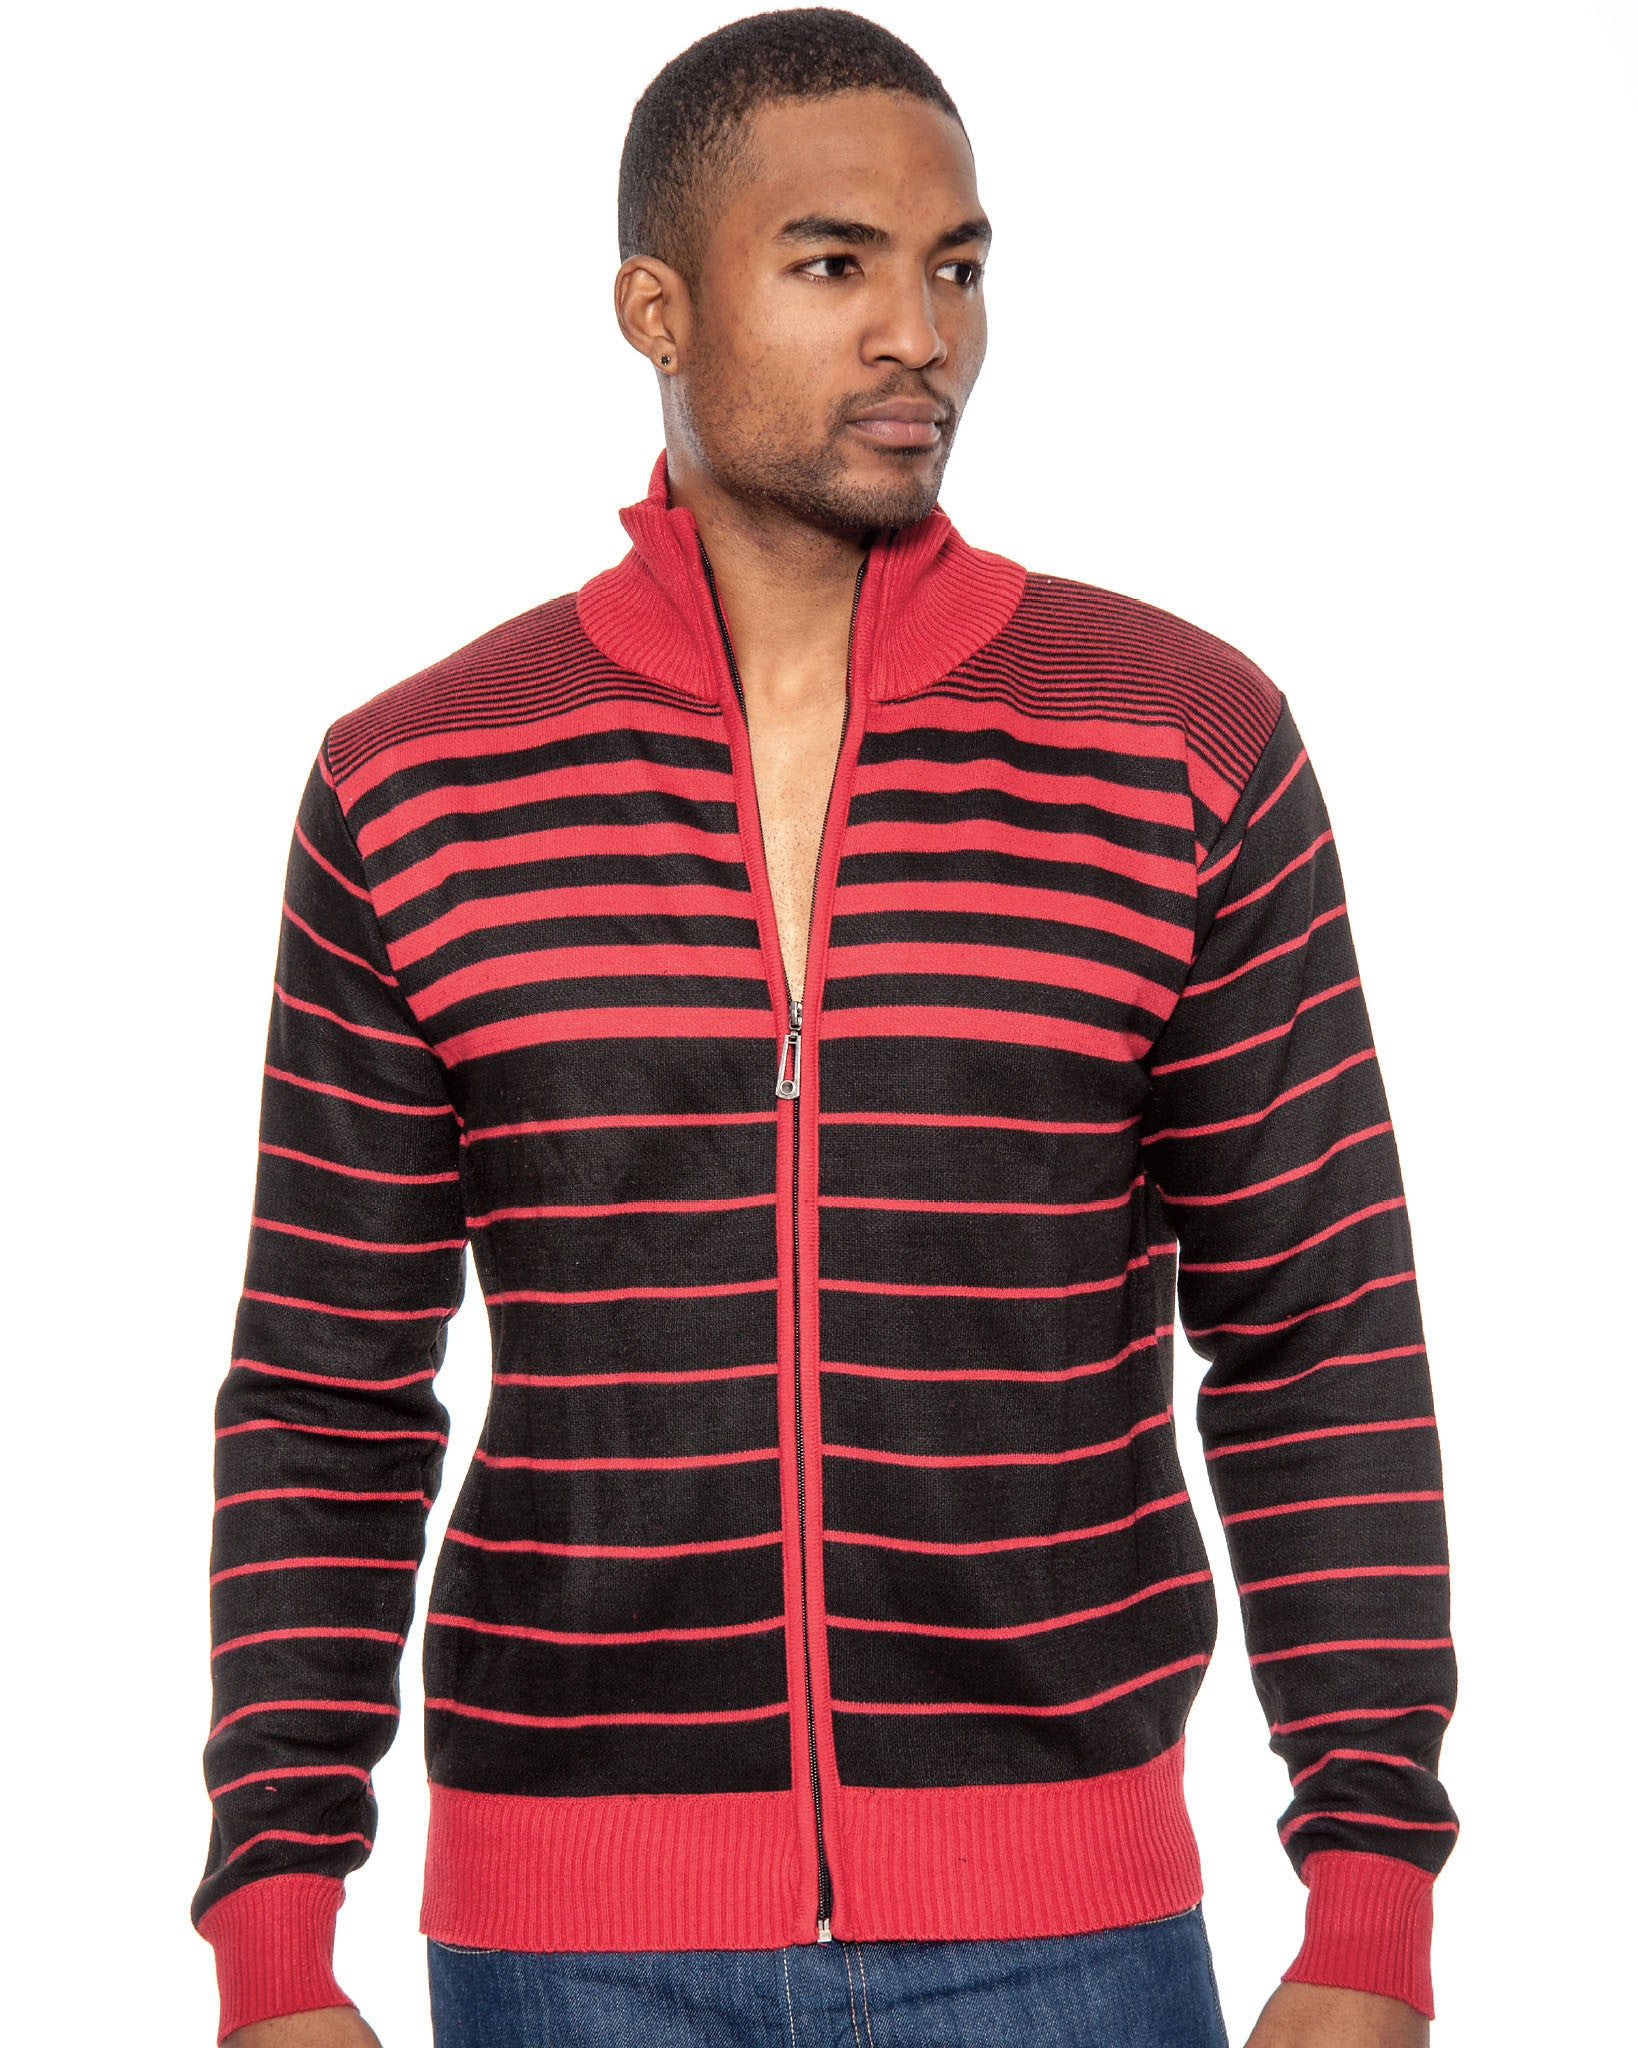 True Rock Mens Striped Full Zipper Knit Sweater Jacket | Red Black